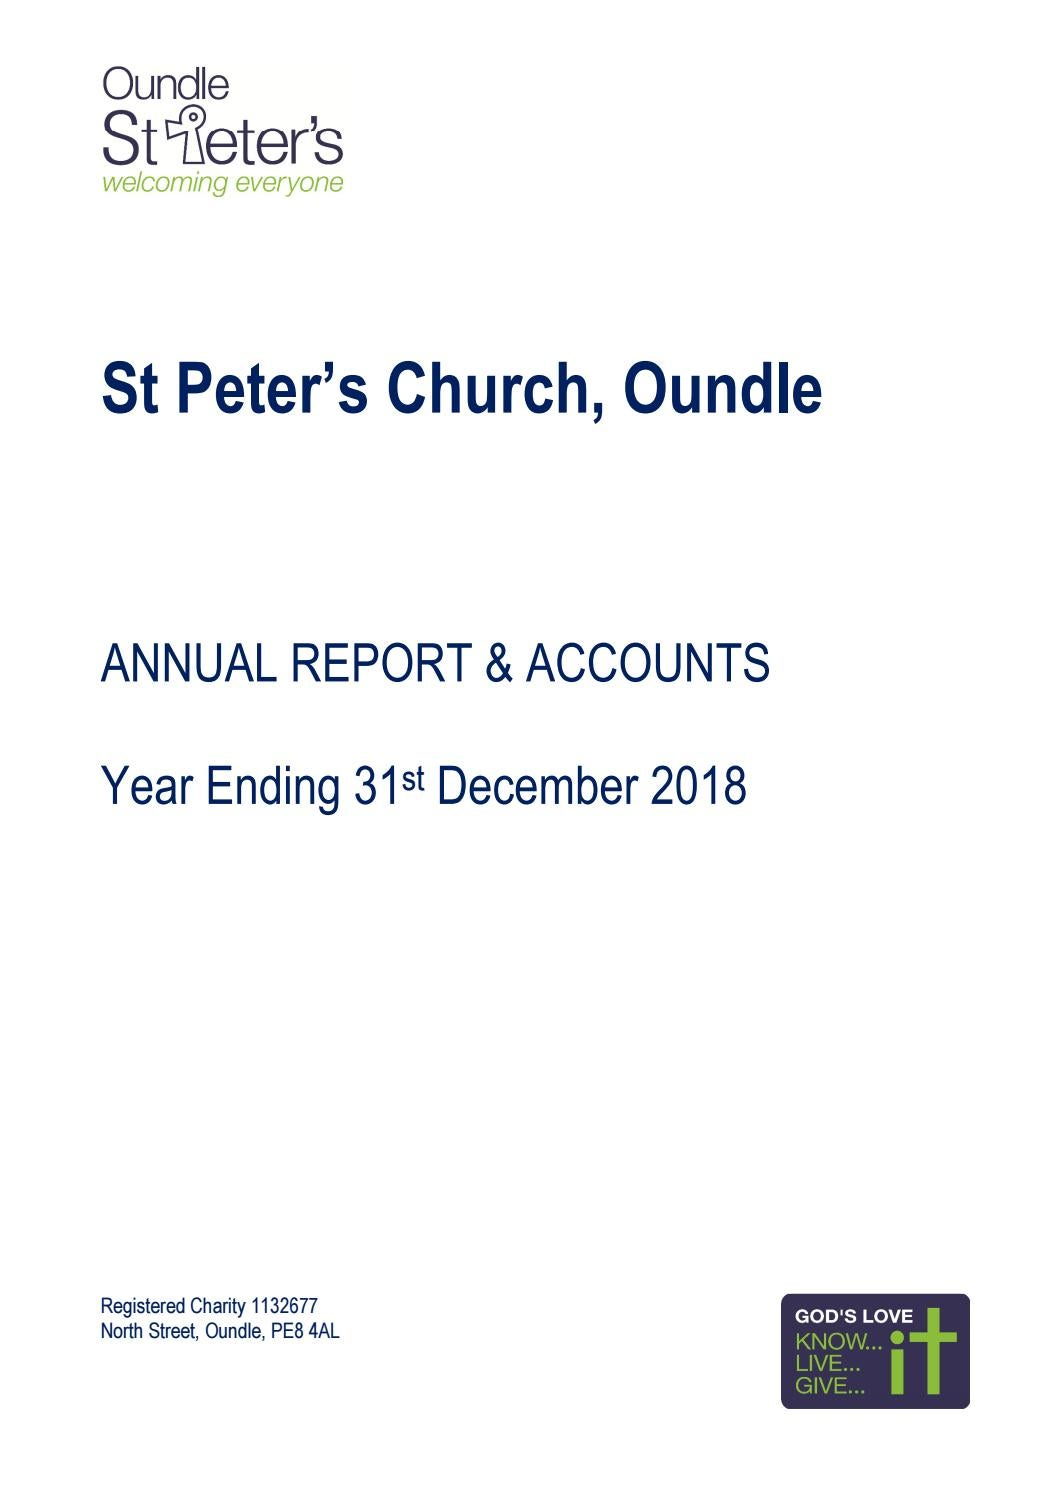 Annual Report and Accounts for Year Ending 31st December 2018 by St